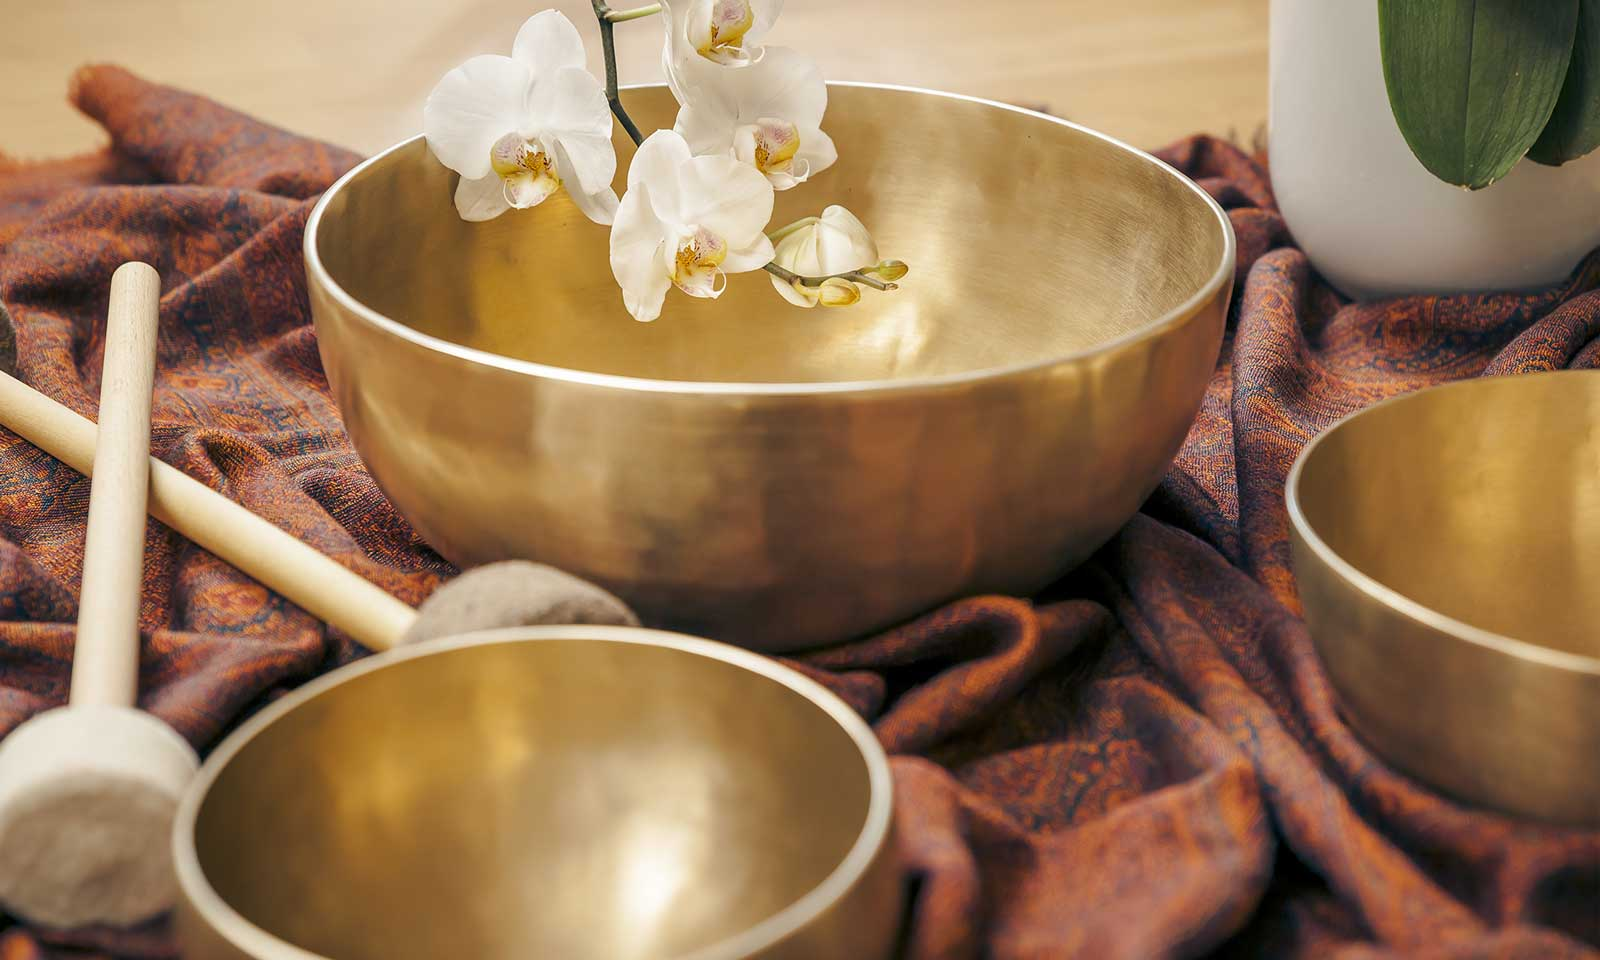 Three golden bronze sound healing Tibetan Singing bowls with a white orchid flower are set out for Sound Healing sessions at I AM, Maui.